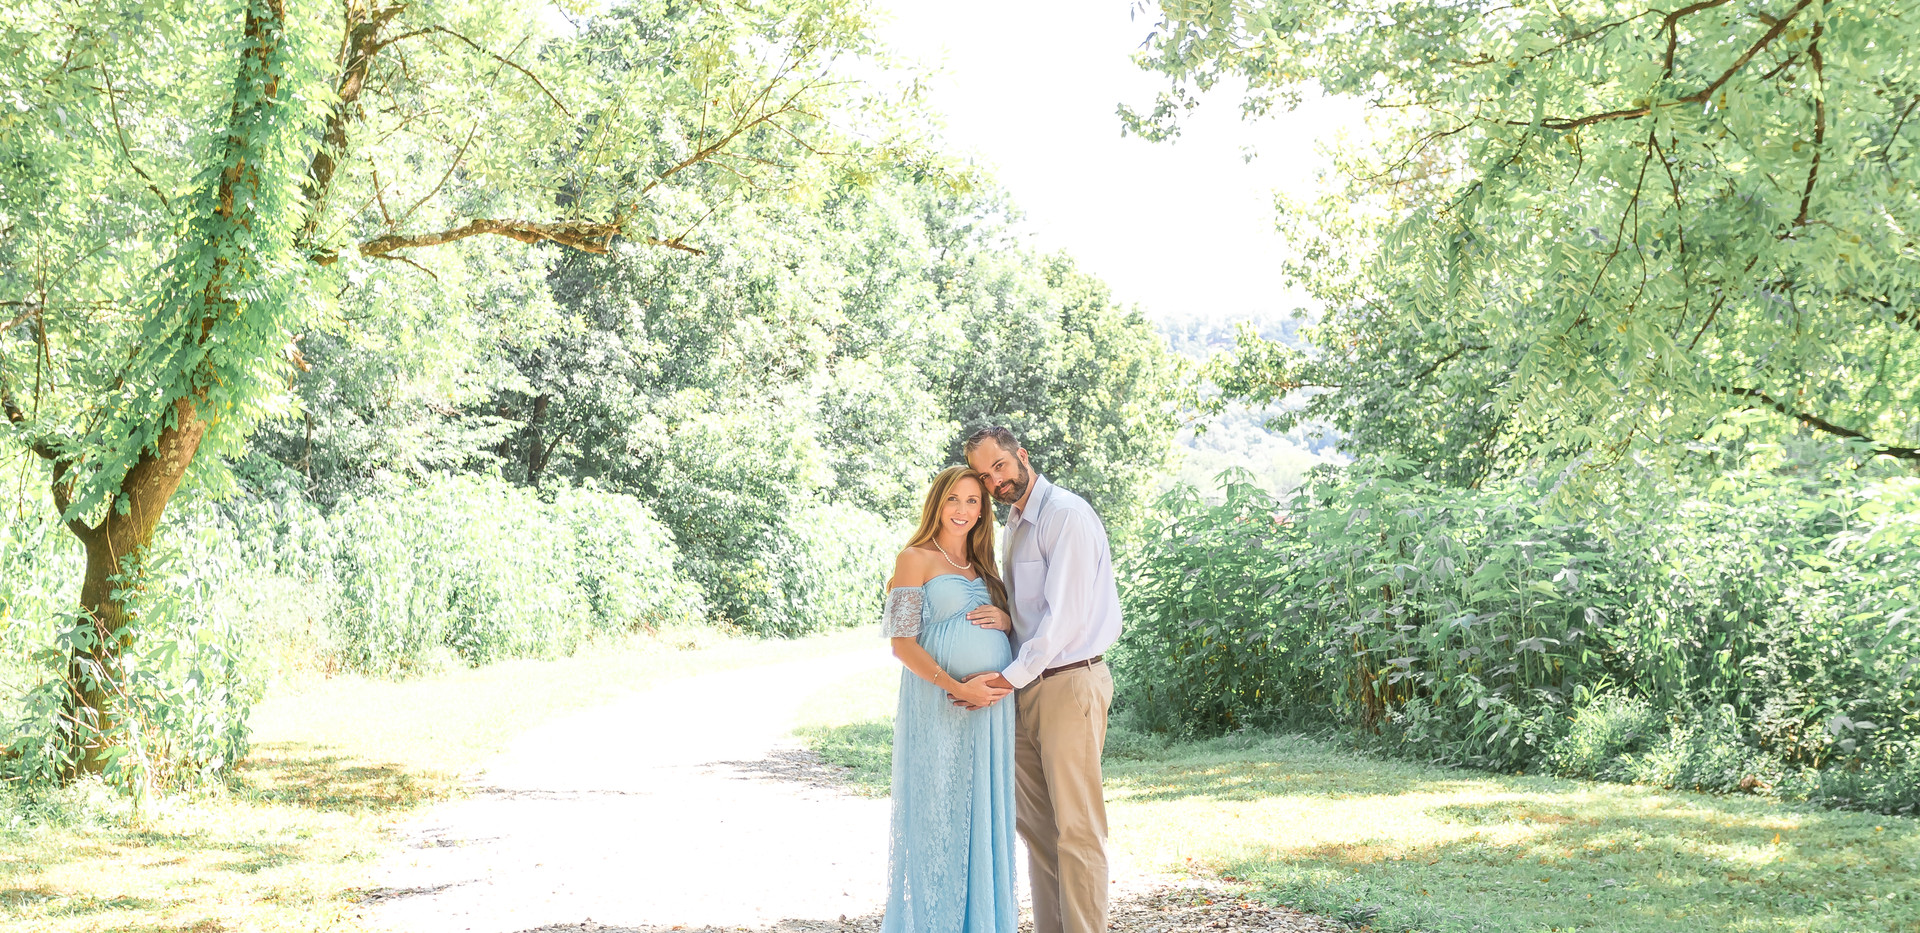 expecting parents in Chattanooga, preganacy in Chattanooga